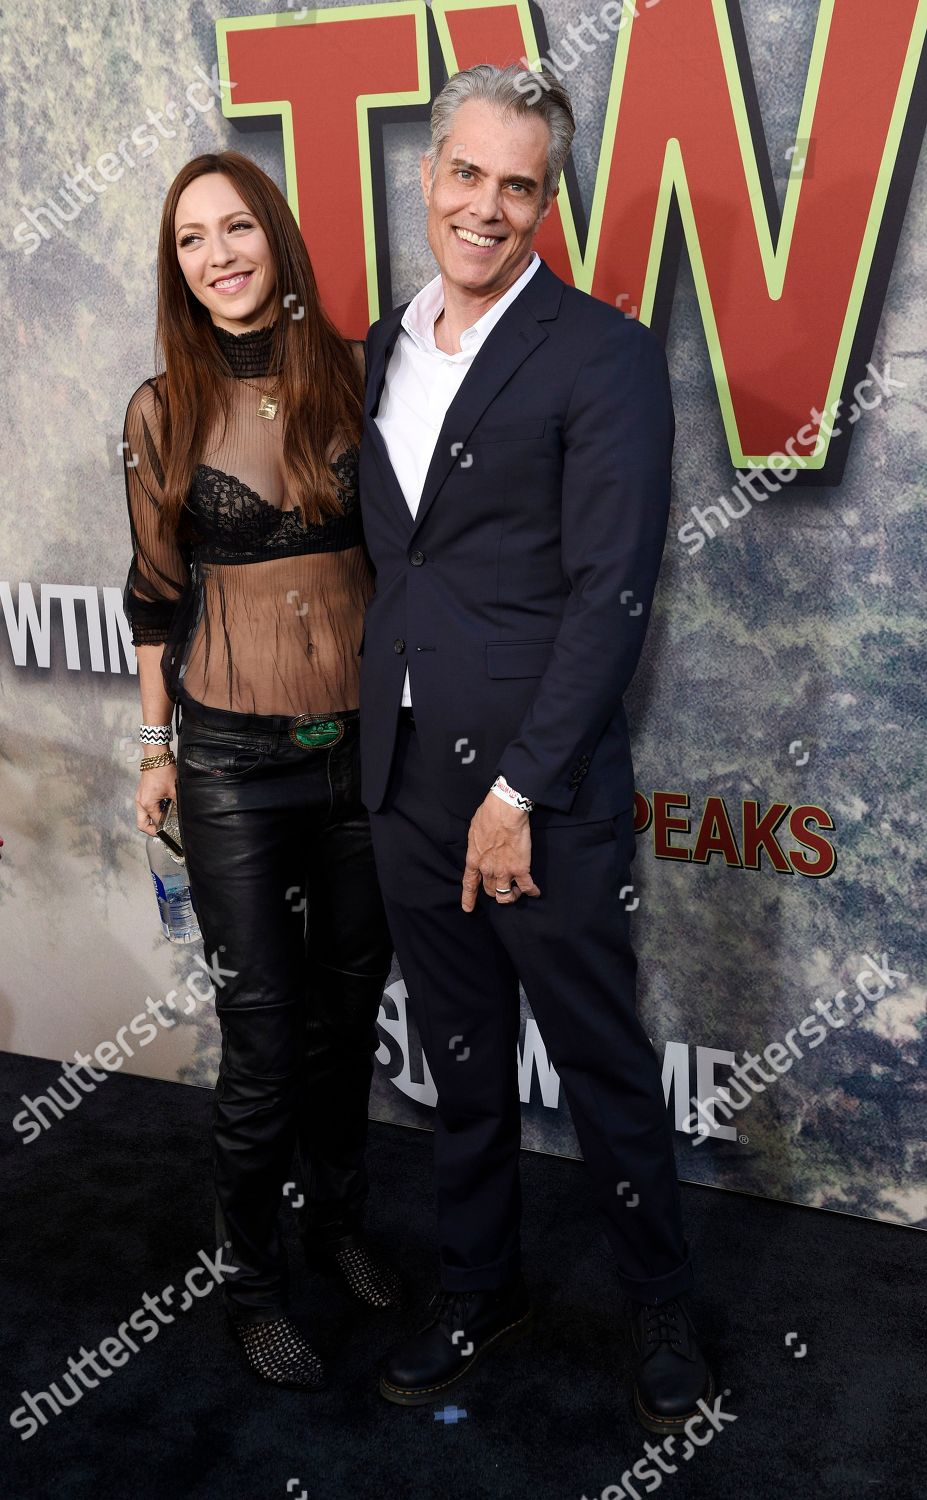 Dana Ashbrook Cast Member Twin Peaks Poses Editorial Stock Photo Stock Image Shutterstock Does dana ashbrook have tattoos? https www shutterstock com editorial image editorial la premiere of twin peaks los angeles usa 19 may 2017 9242552m